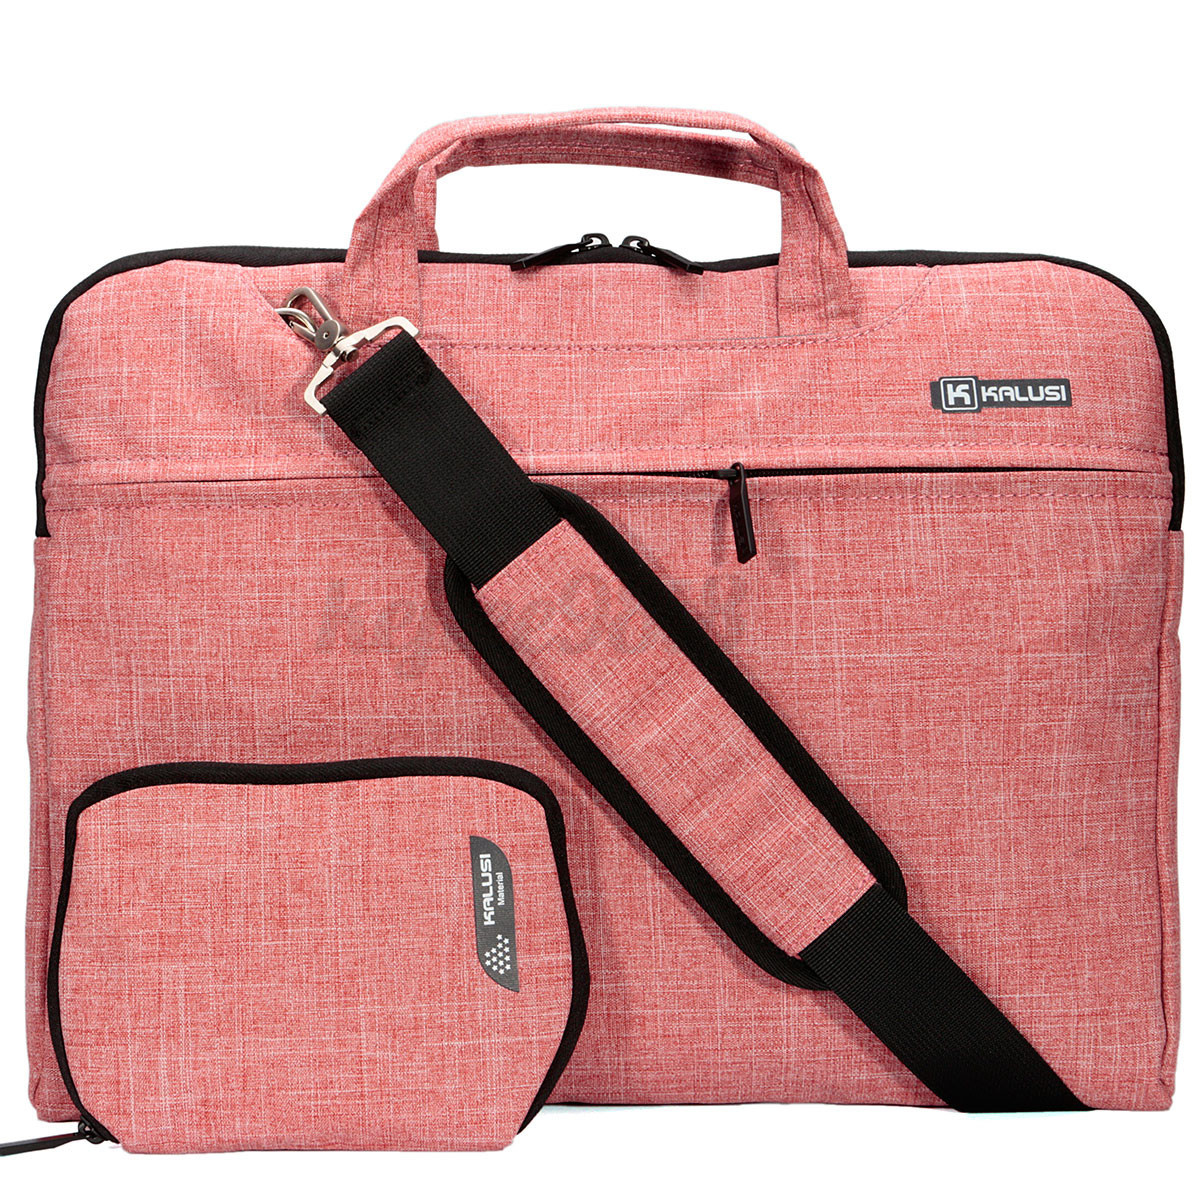 Bolsa funda algod n ordenador port til por 13 39 39 14 39 39 15 39 39 laptop pc oficina ebay - Fundas para pc portatil ...